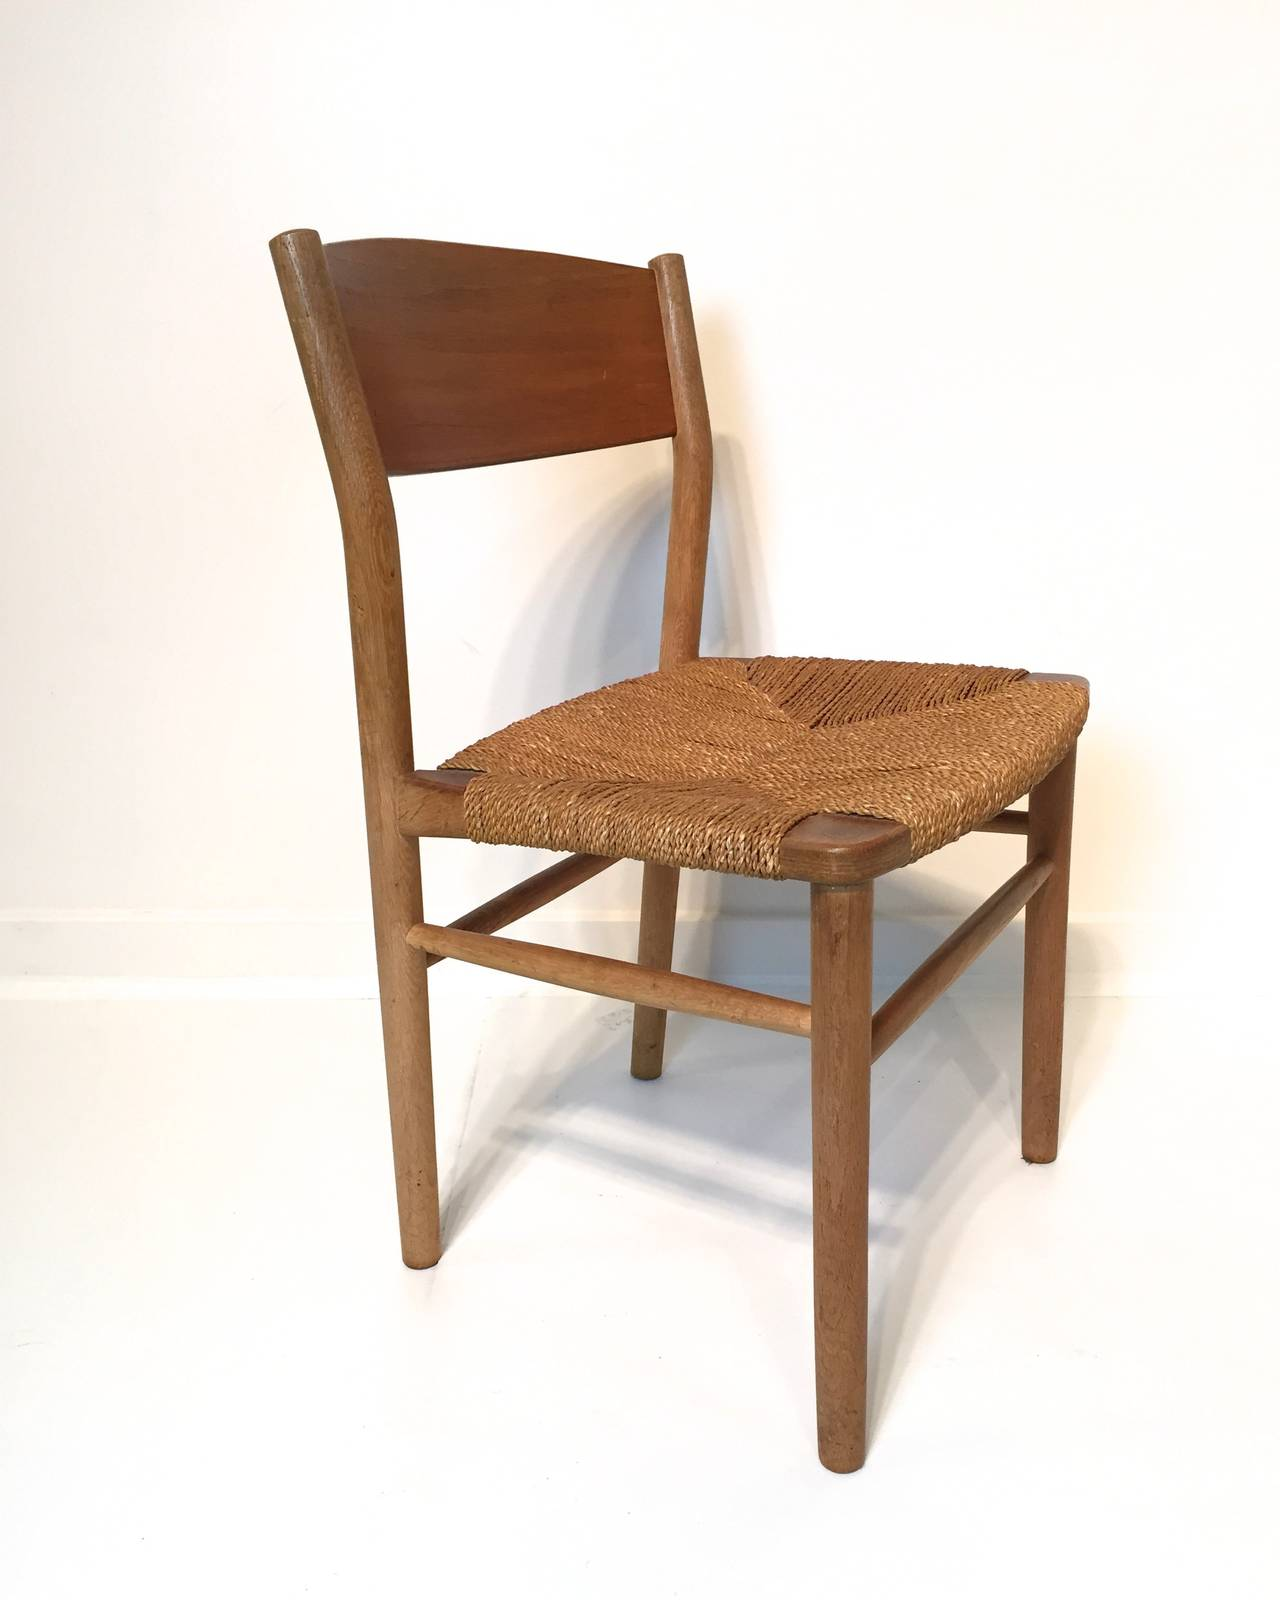 borge mogensen seagrass dining chair at 1stdibs hospitality rattan 406 3373 nat s sea breeze indoor